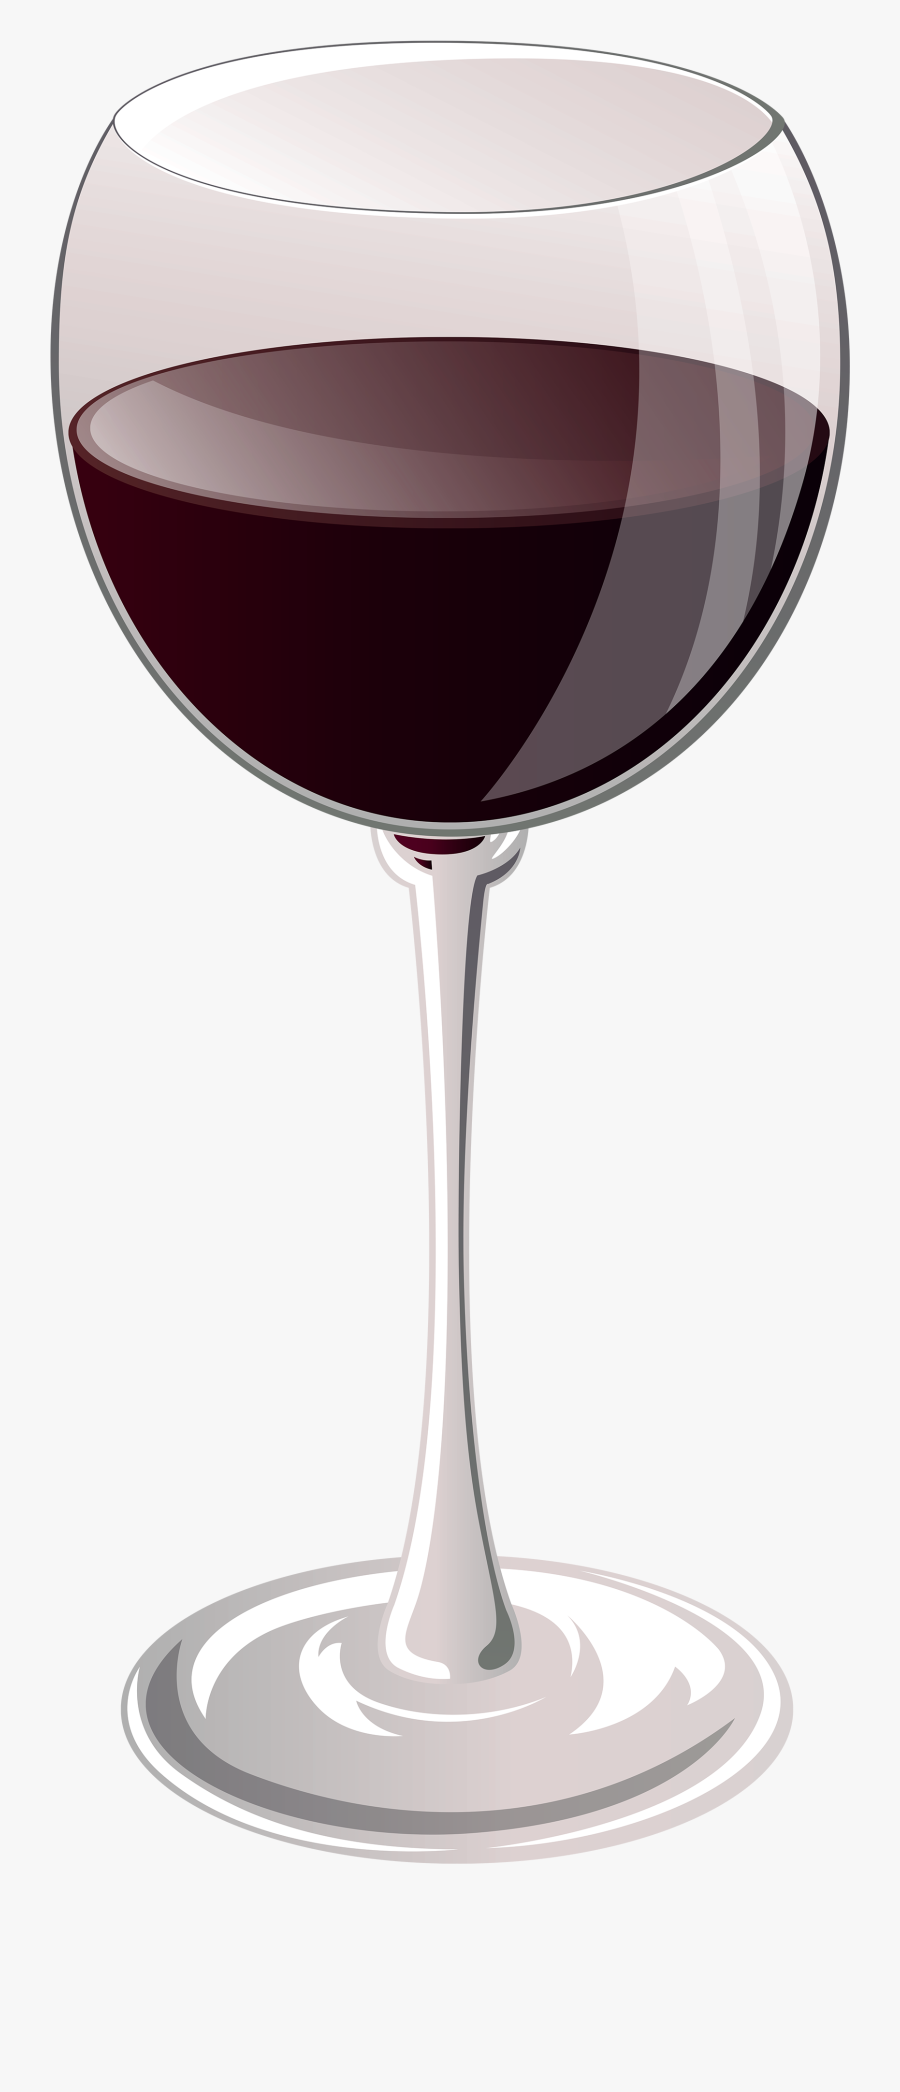 Wine Glass Download Wine Clip Art Free Clipart Of Glasses Cartoon Wine Transparent Background Free Transparent Clipart Clipartkey